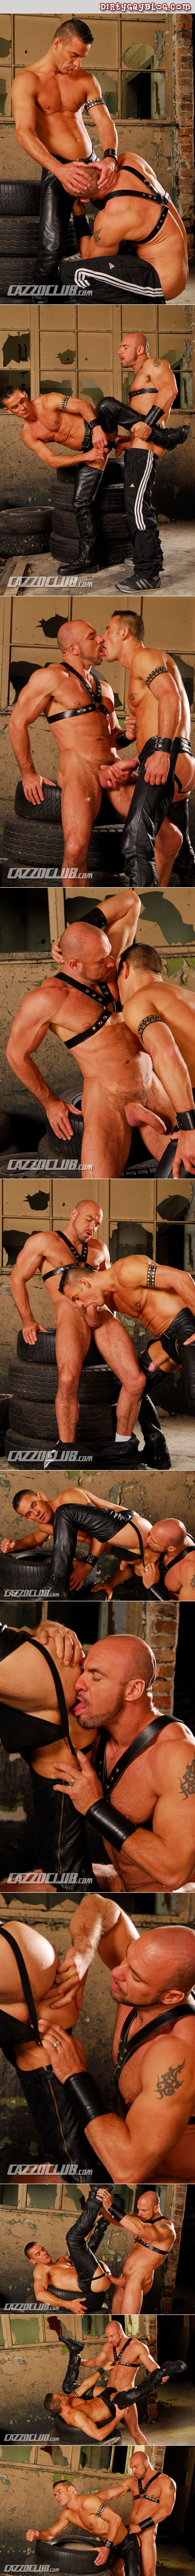 Leather muscle Daddies fucking in an abandoned warehouse.